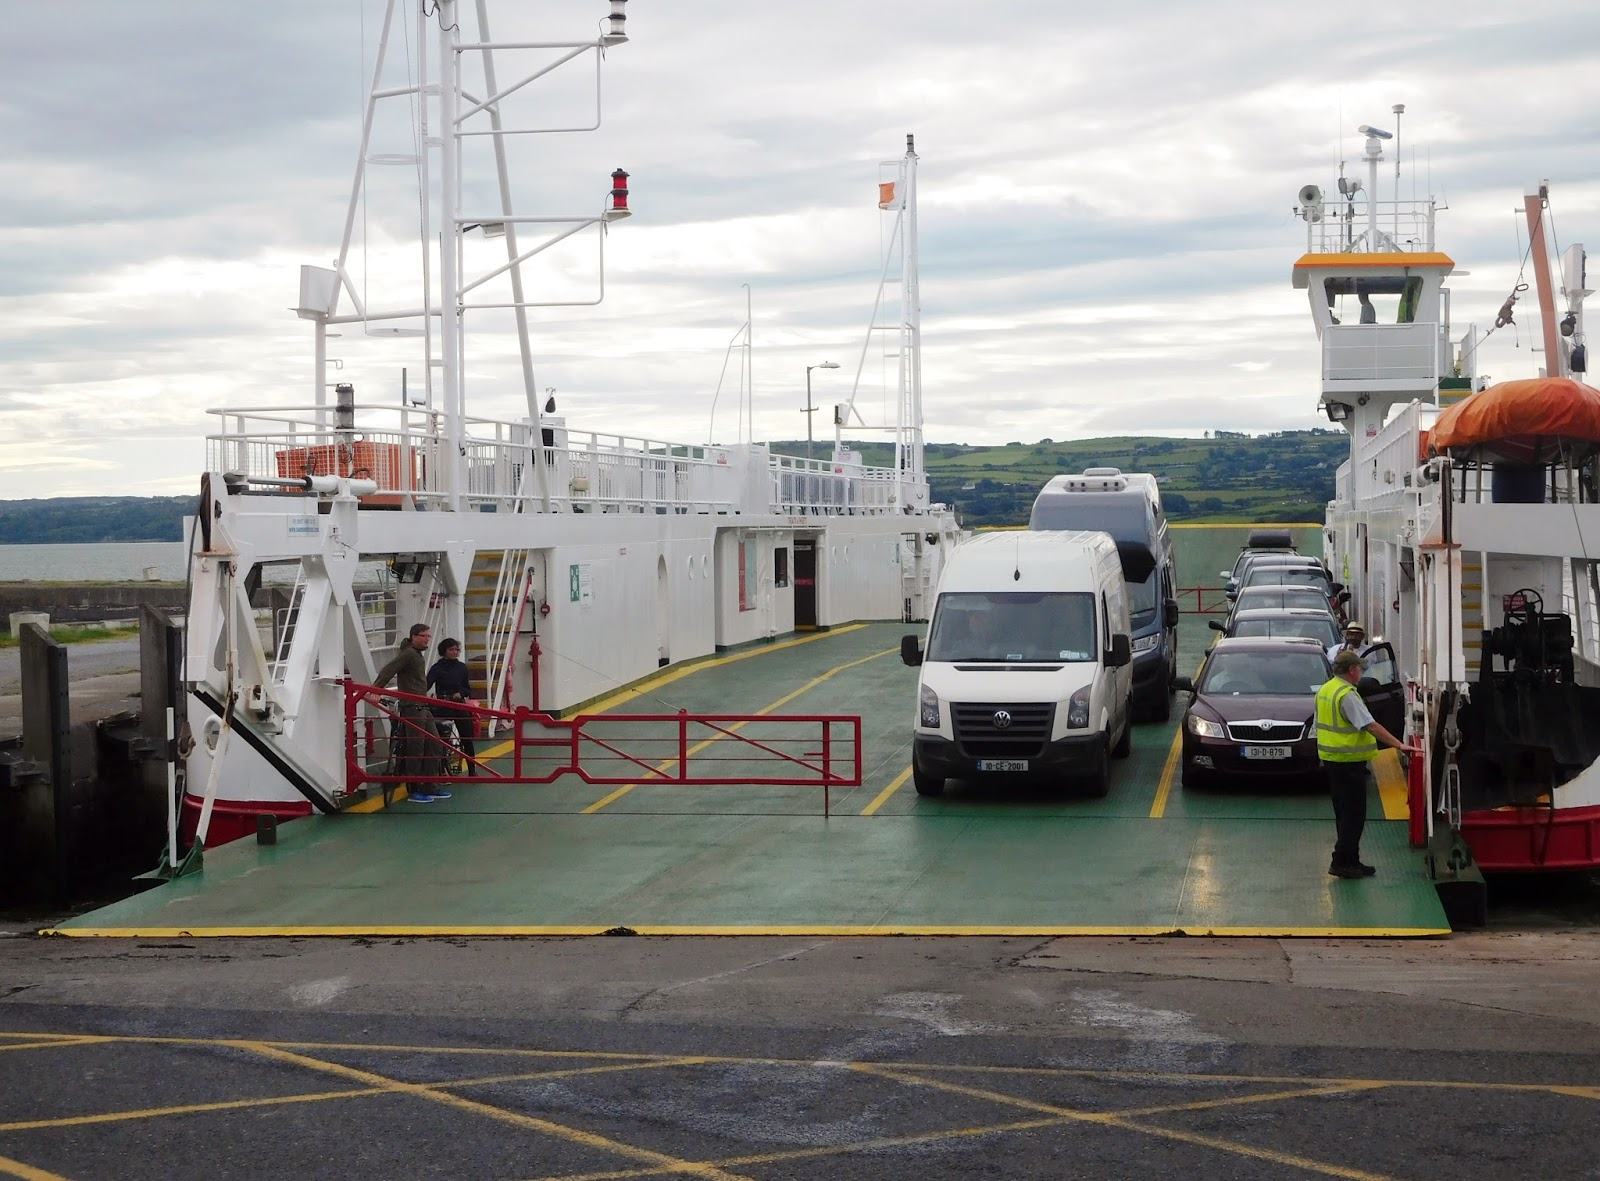 little ferry guys 15 reviews of kar connection search 41 cars for sale mike and the guys at kar connection where very knowledgeable and honest they help me wi.